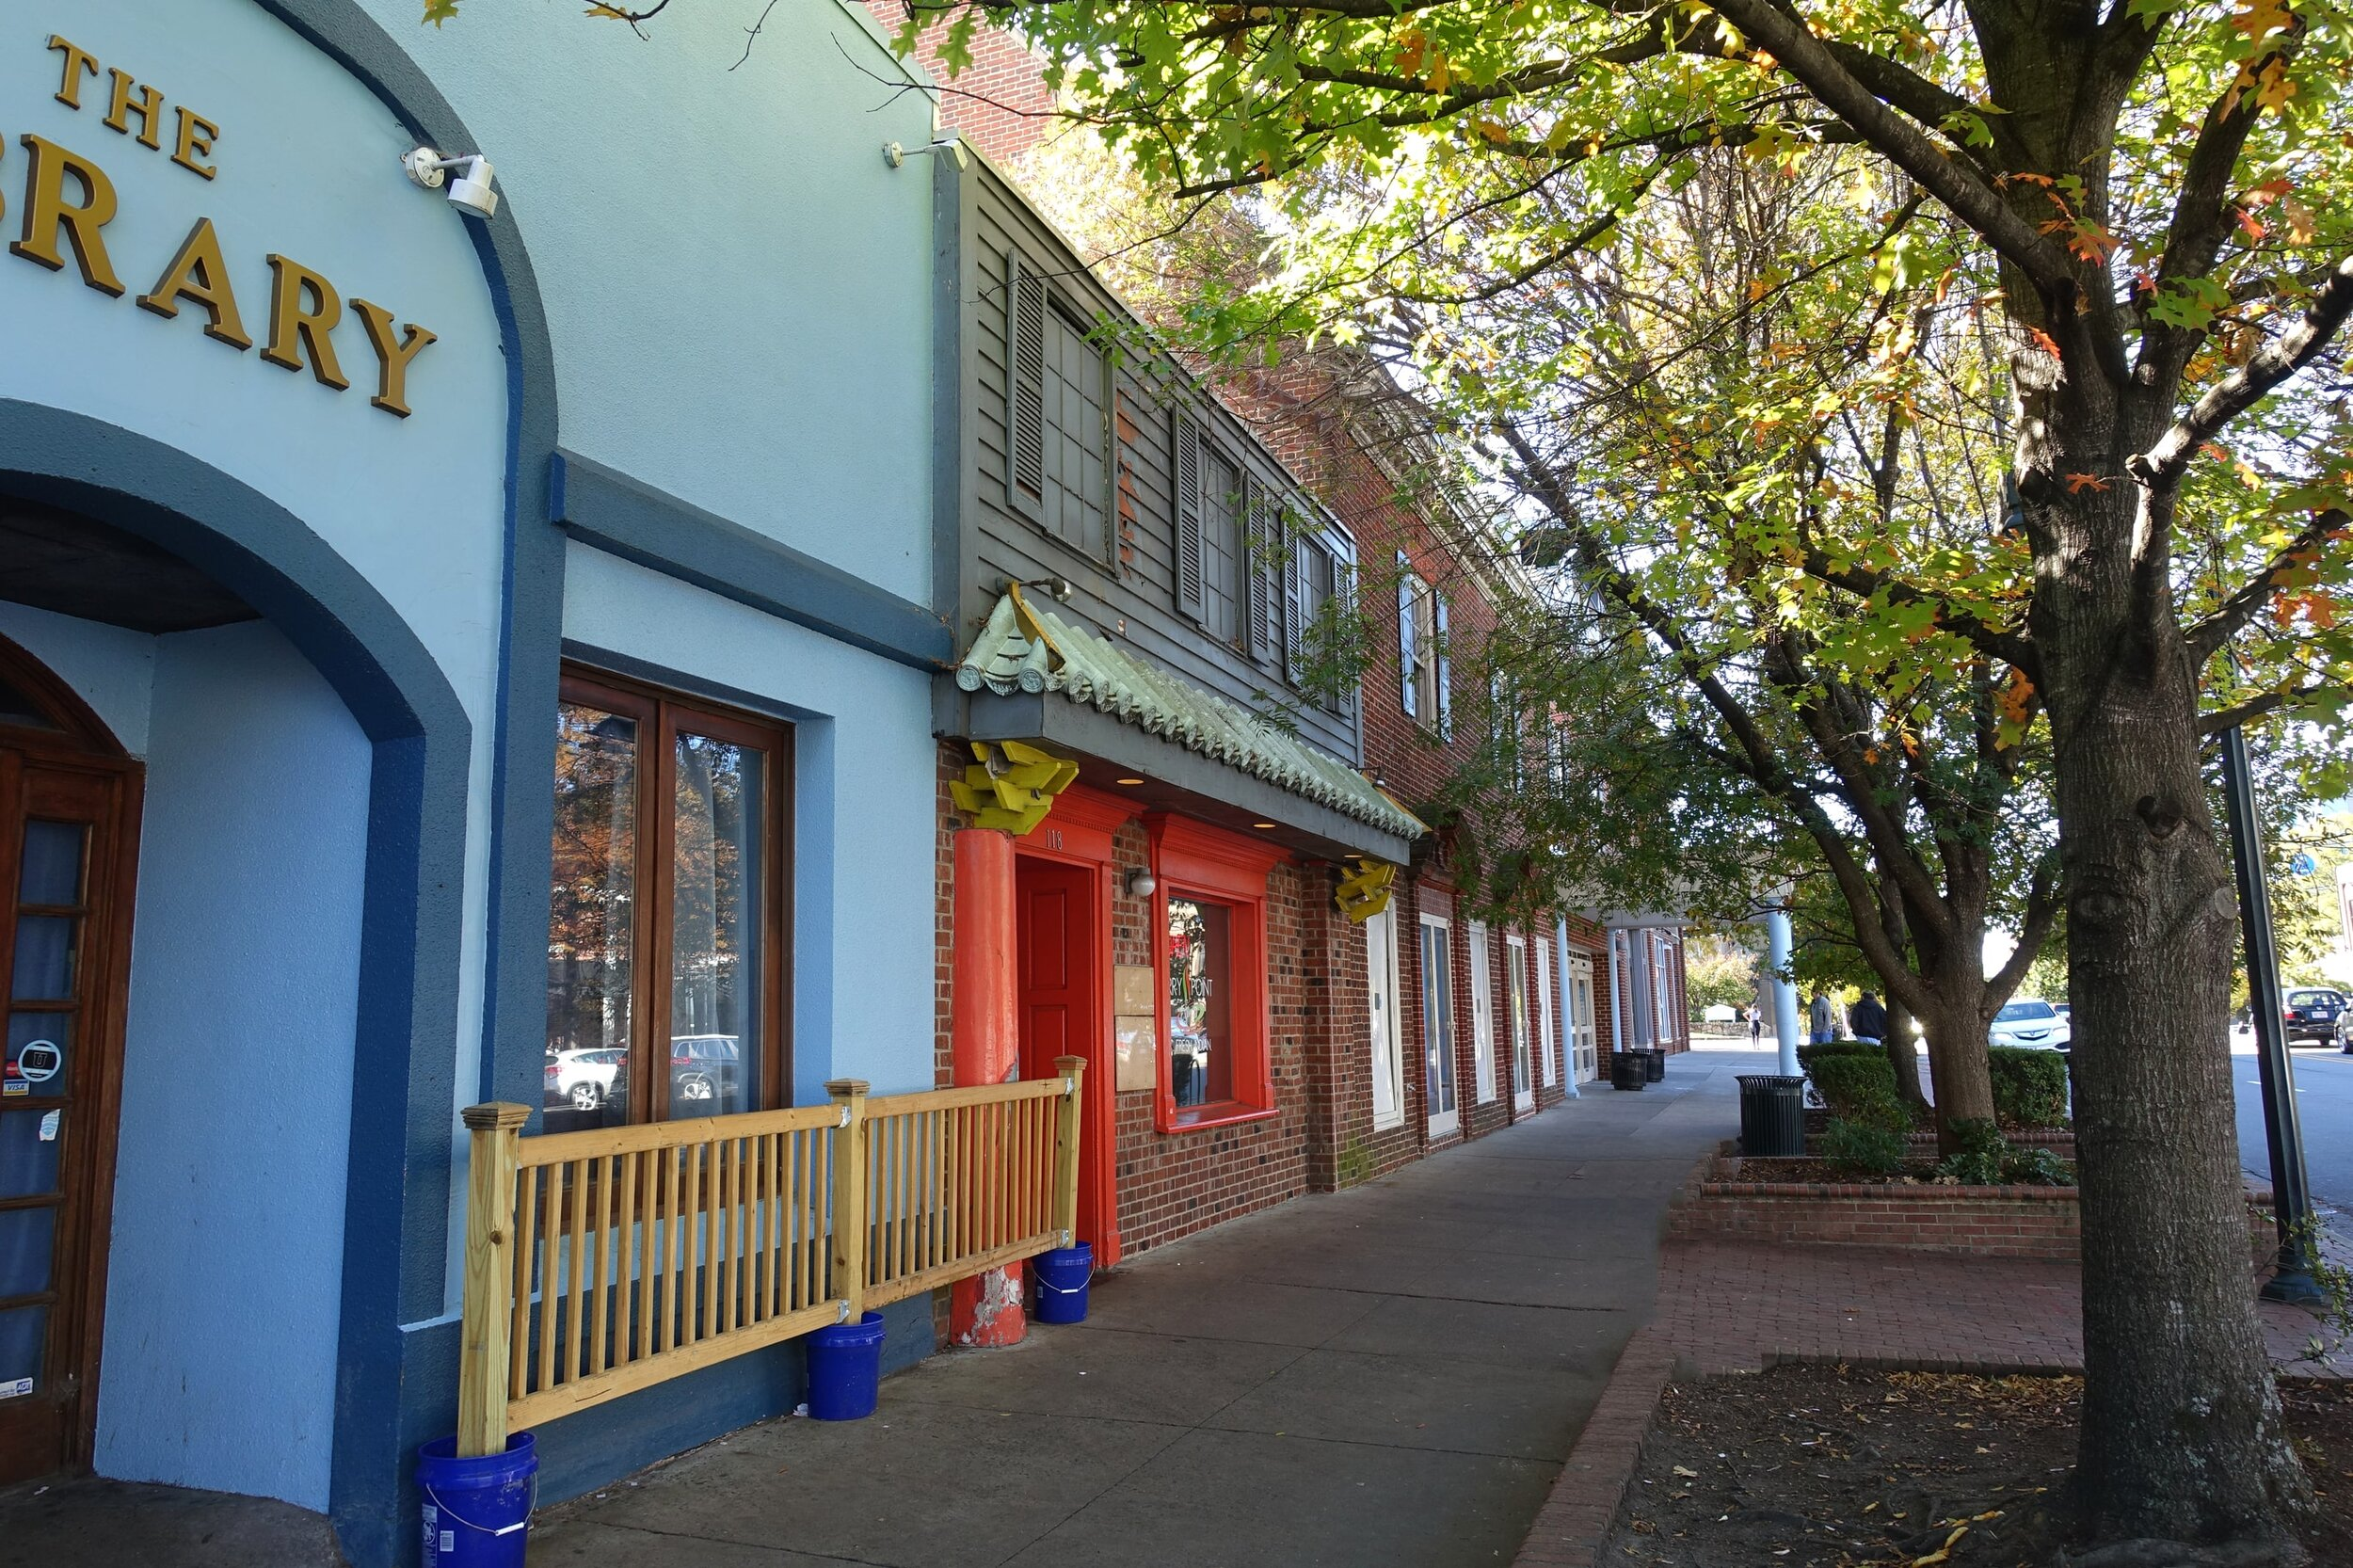 Franklin Street, Chapel Hill, home of some great restaurants